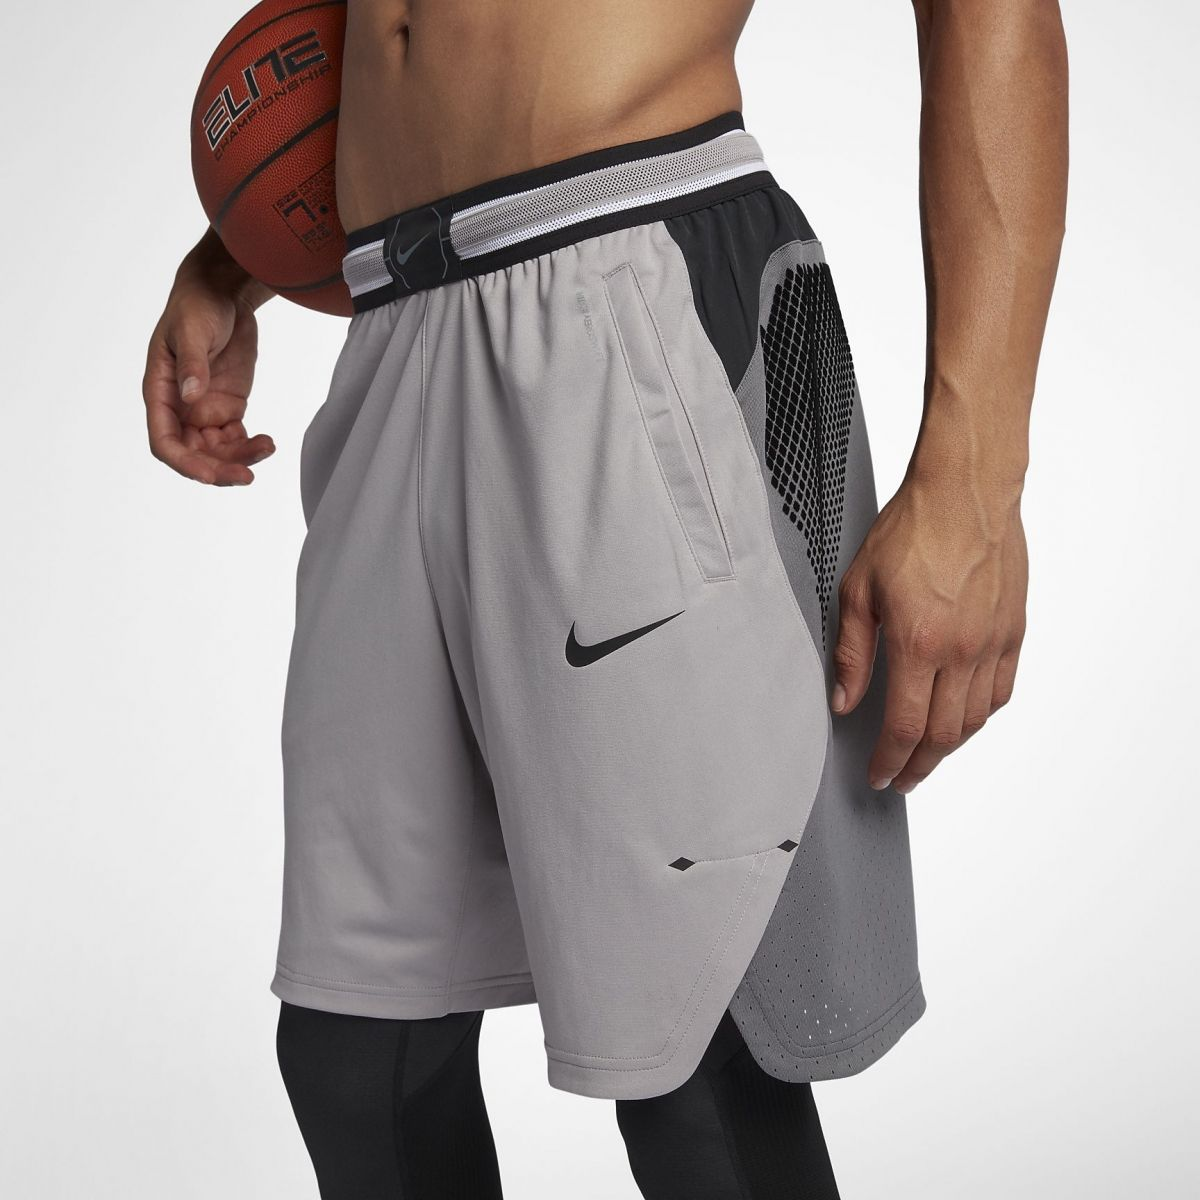 Type Shorts Nike Aeroswift Basketball Shorts